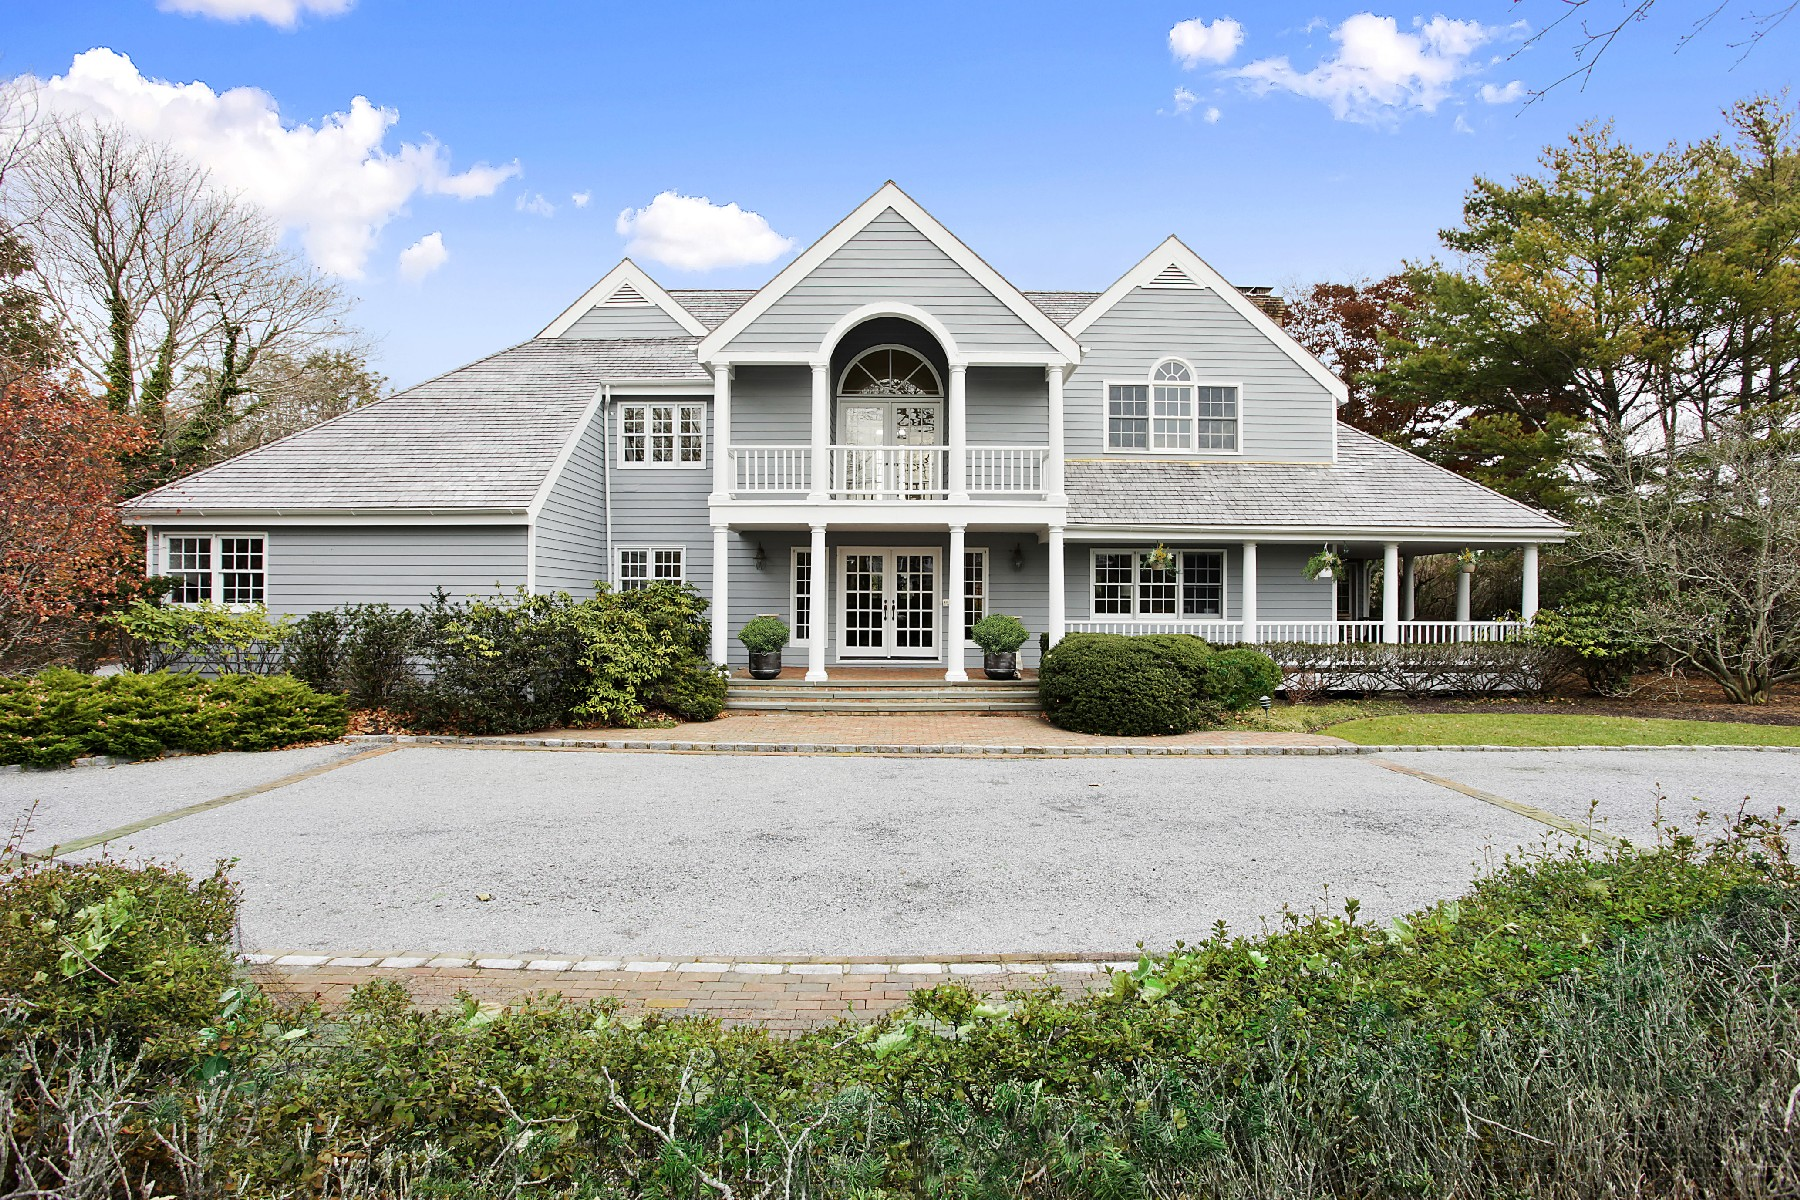 Property For Sale at Westhampton Beach Estate With Pool and Tennis